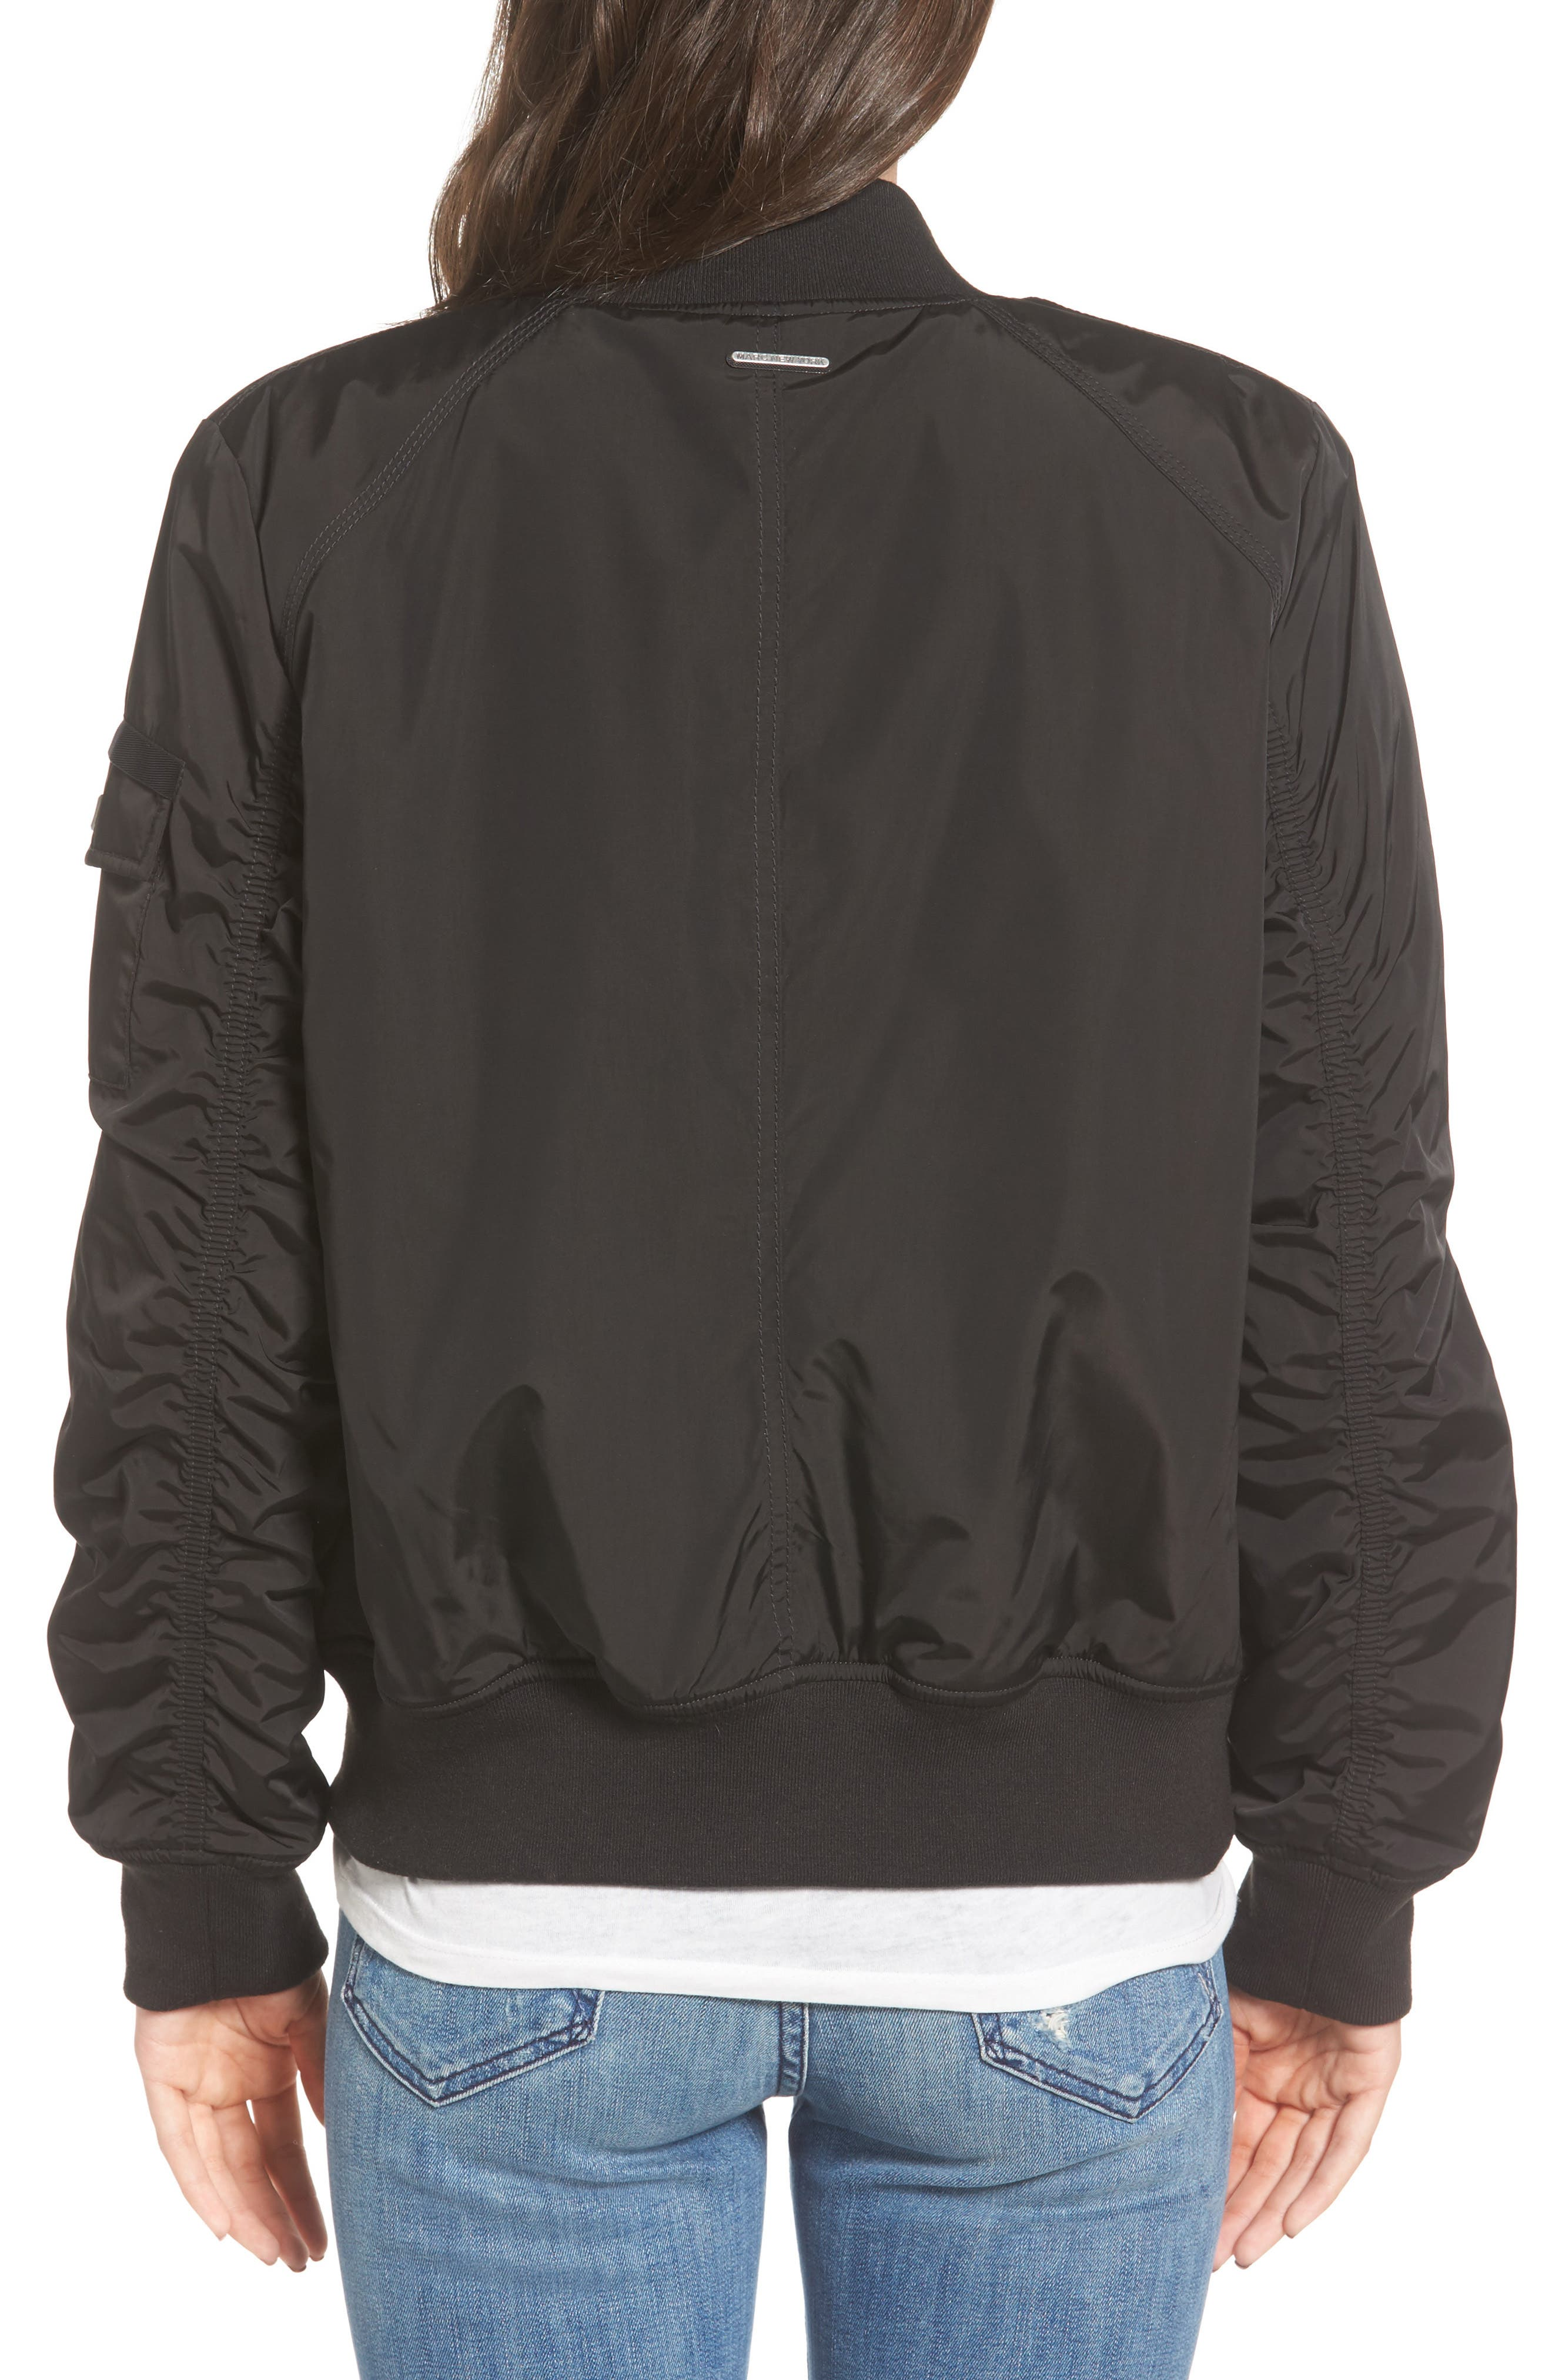 Andrew Marc Nicole Reversible Bomber Jacket,                             Alternate thumbnail 2, color,                             001